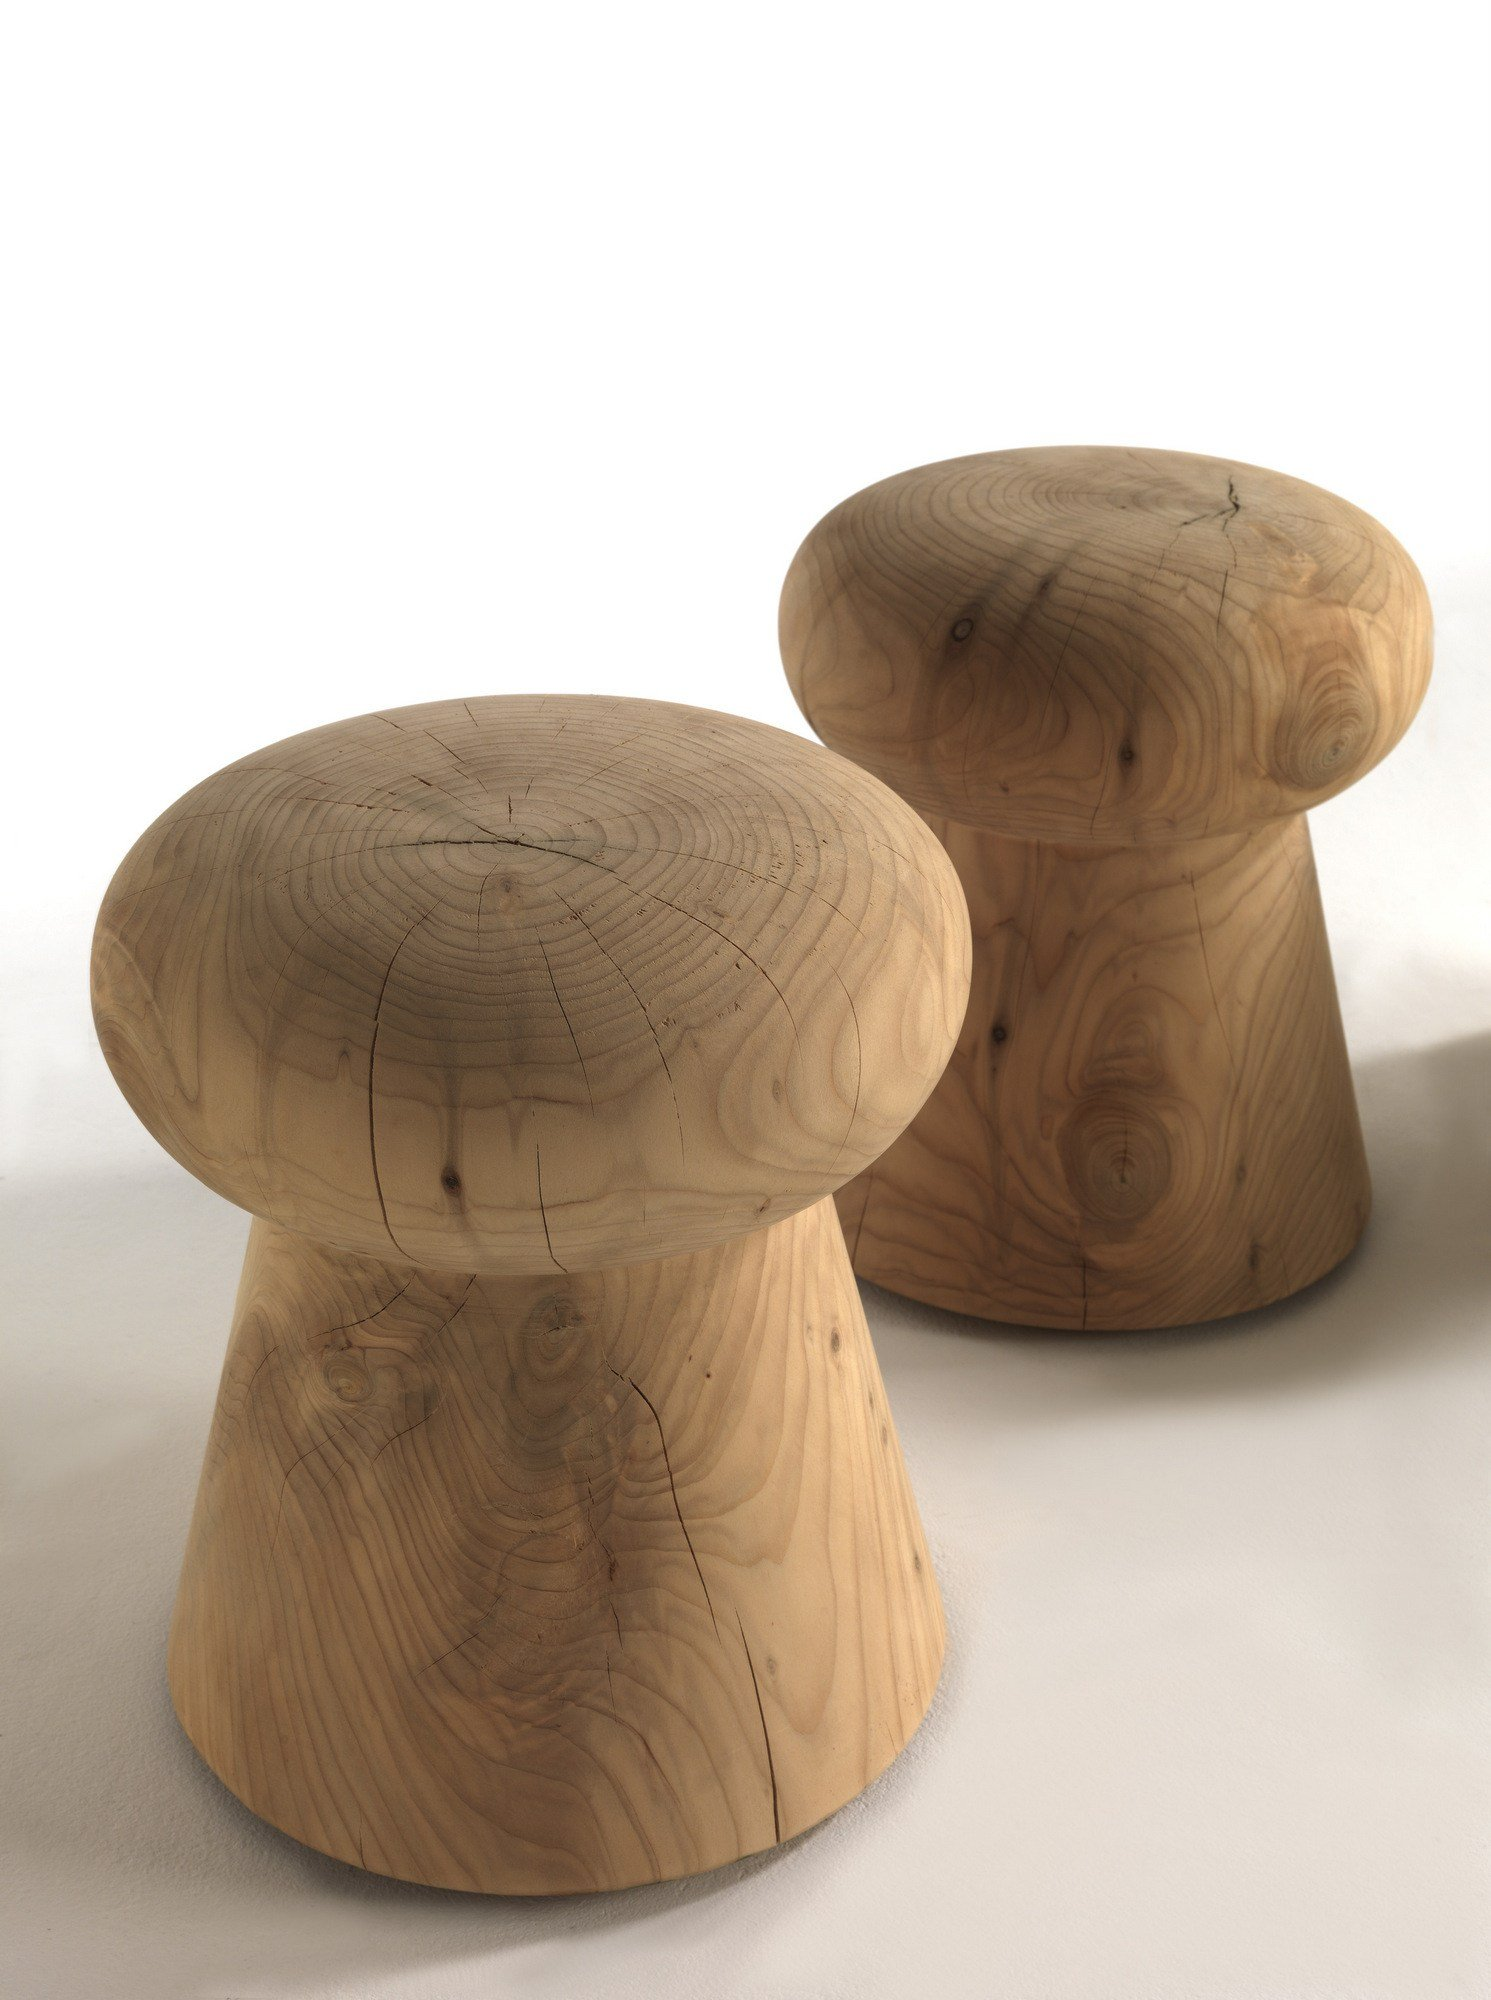 tabouret en bois brut by riva 1920 design ruggero giuliani. Black Bedroom Furniture Sets. Home Design Ideas